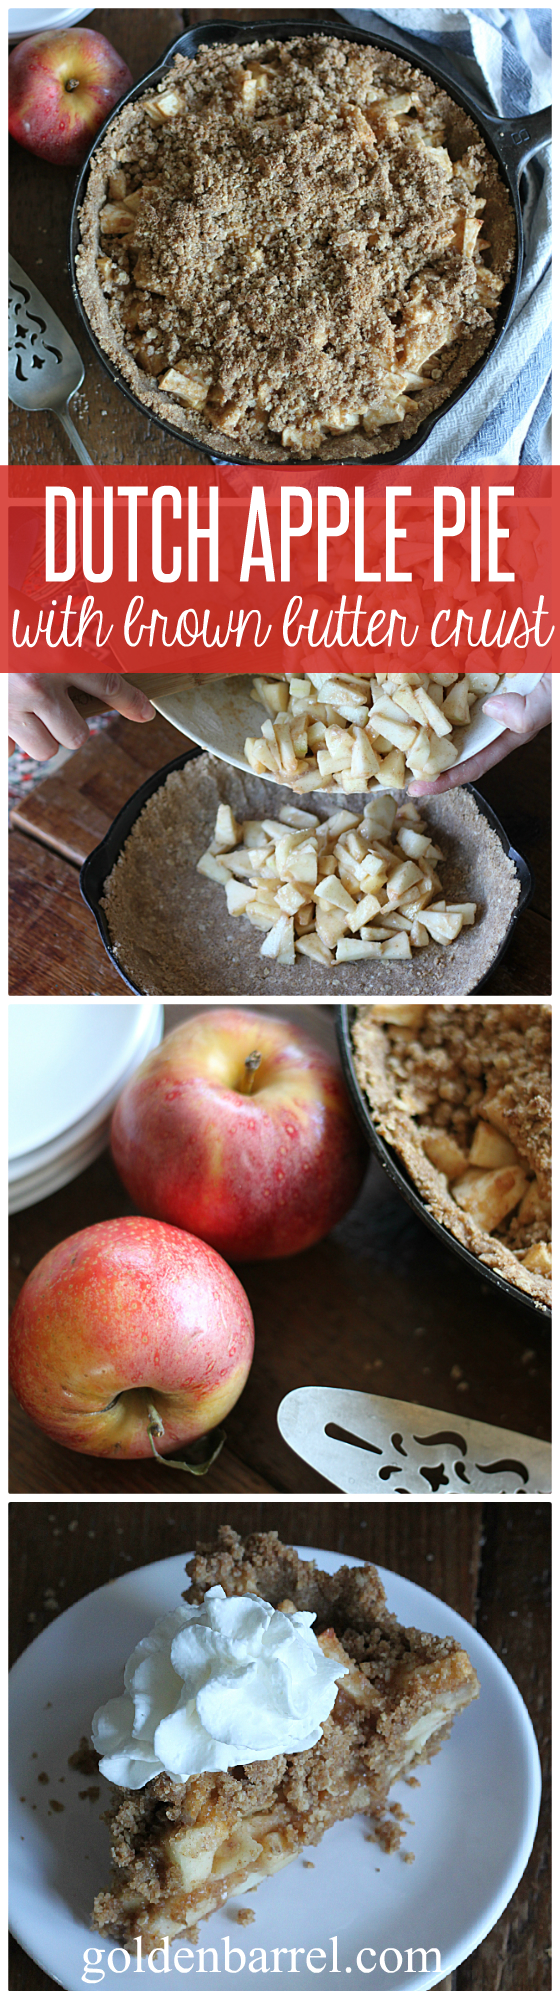 Dutch Apple Pie with Brown Butter Crust - Golden Barrel